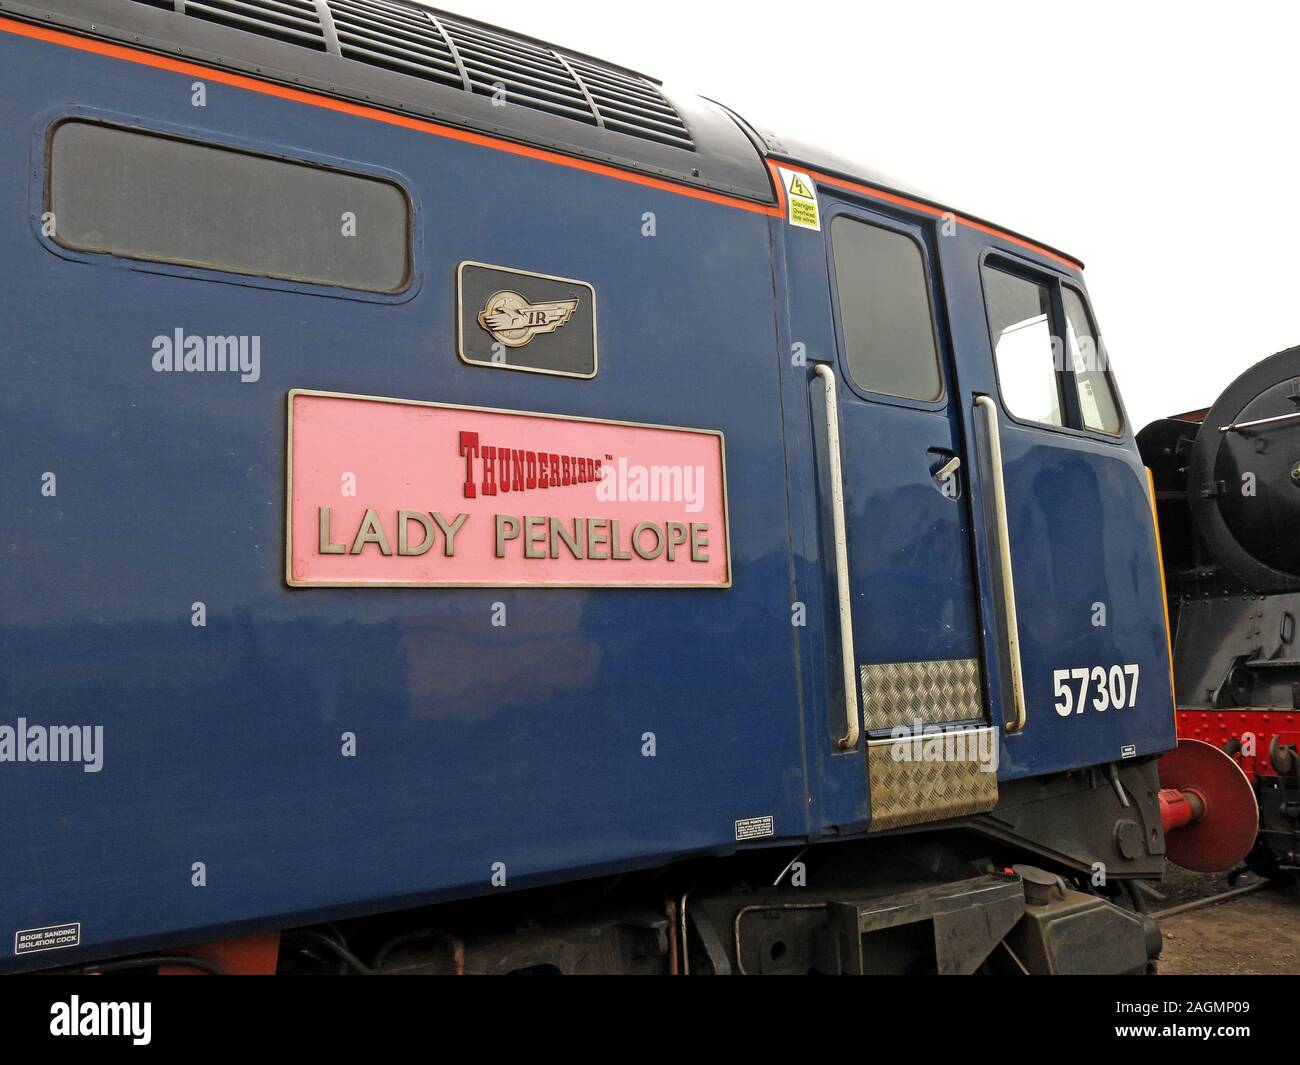 HotpixUK,@HotpixUK,GoTonySmith,Crewe works,rail,railway,trains,engine,transport,history,BR,British Railways,UK,Great Britain,Crewe,Cheshire,England,Class 57,Class57,IR,pink,plaque,Thunderbirds,Lady Penelope,blue,diesel engine,loco,Engine 57307,DRS,Brush Traction,Cable Thieves Were Watching You,vinyls,Cable Thieves,we,are,Watching You,nameplate,name plate,Crewe Works